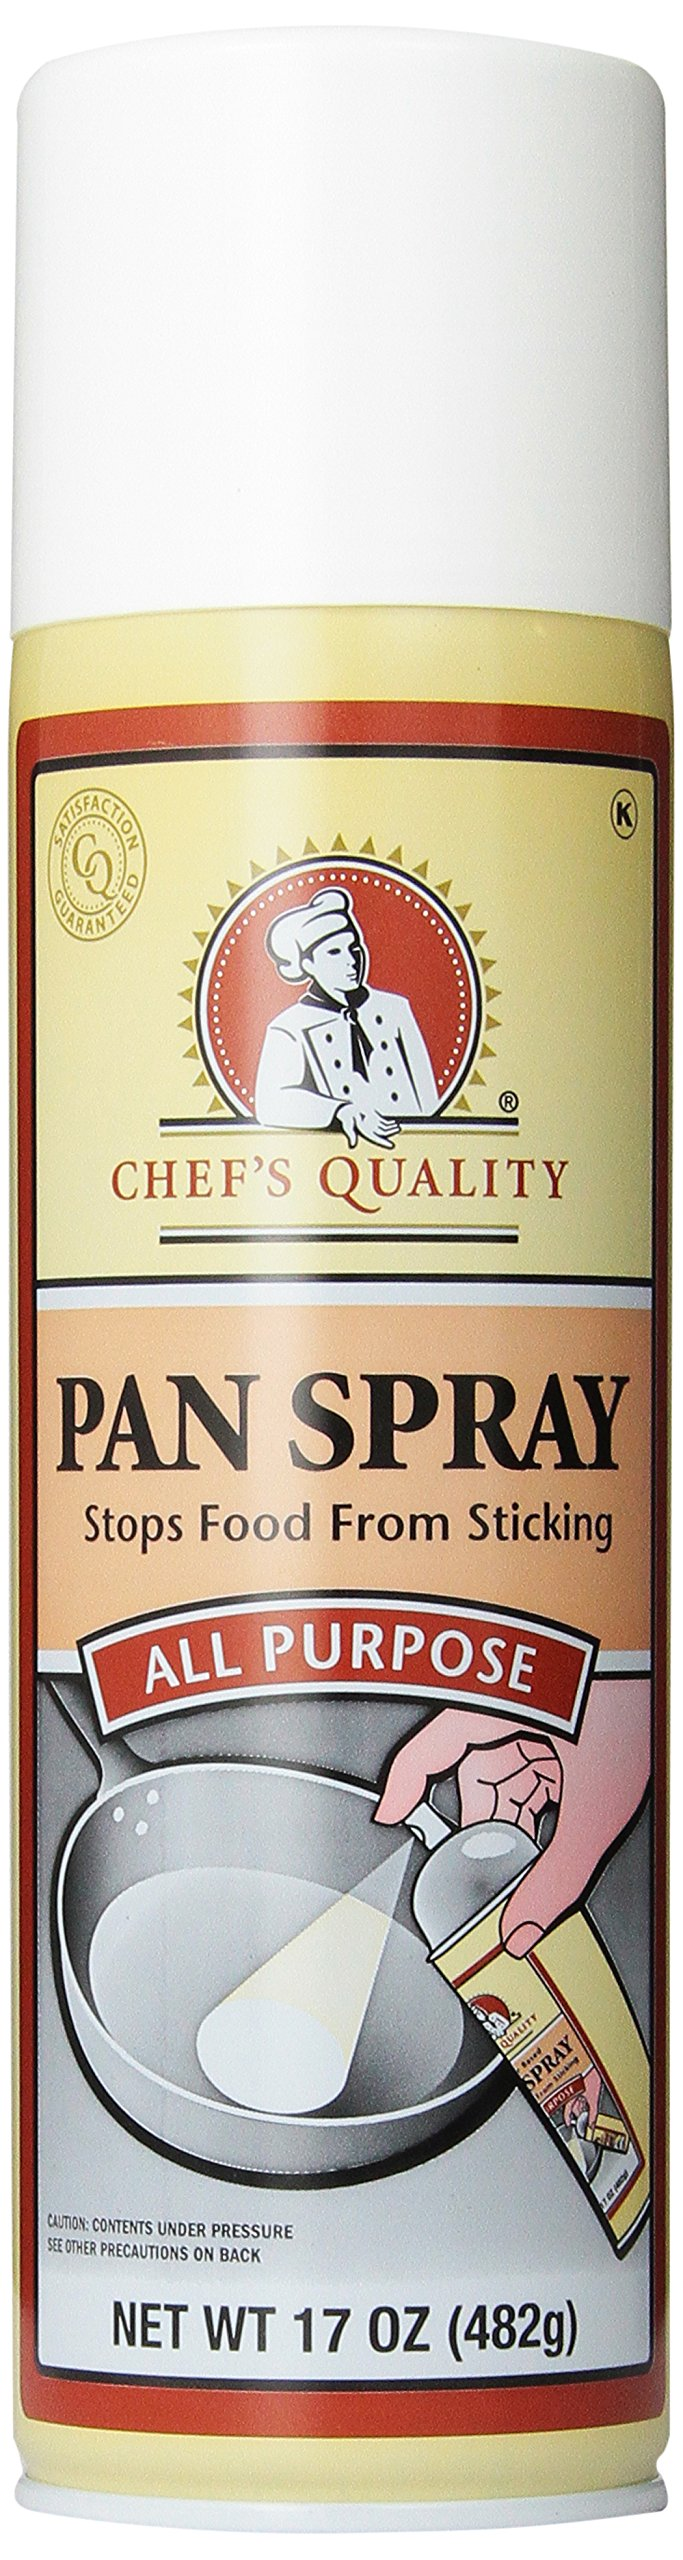 Chef's Quality All purpose Oil Pan Spray, 17 ounce, 6 count